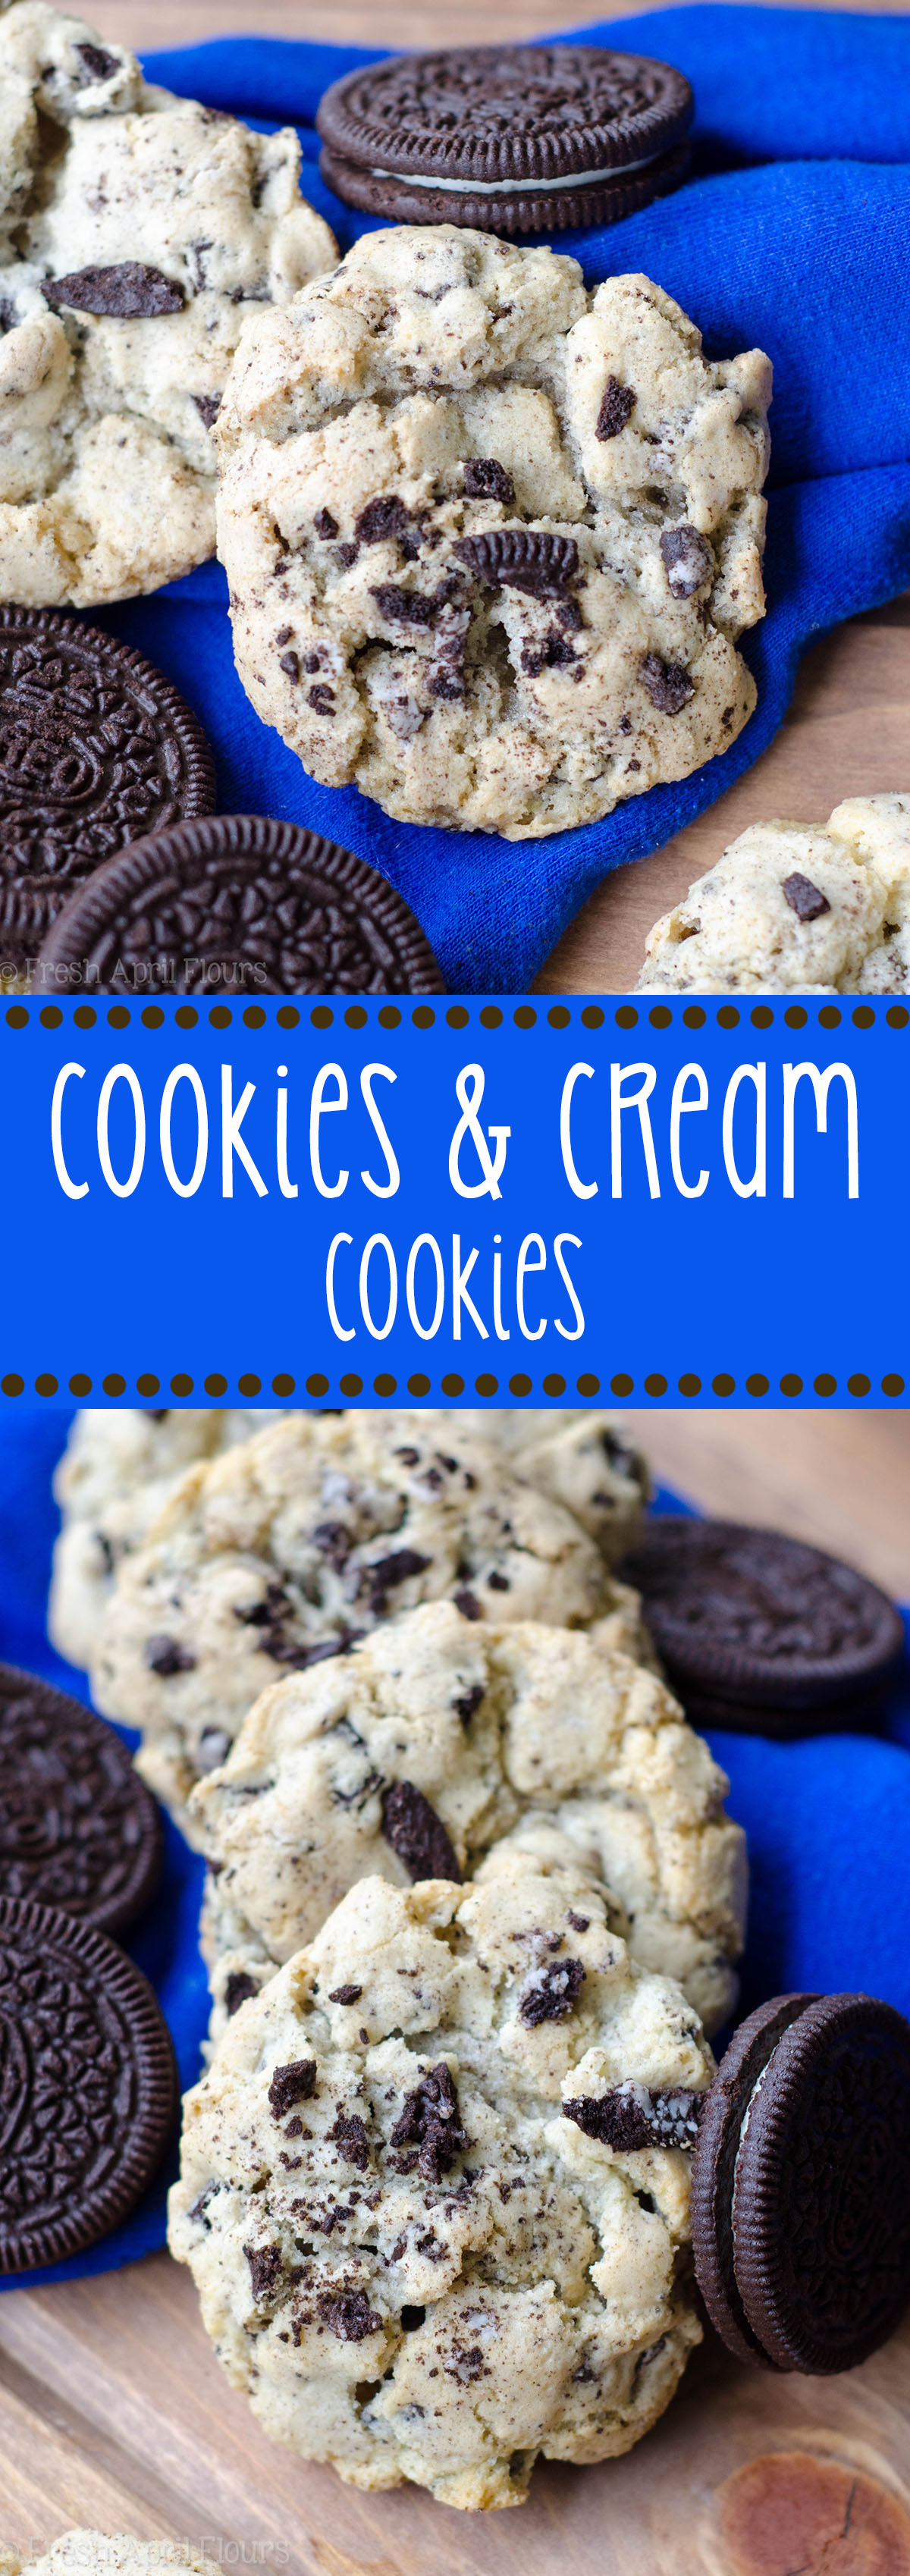 Cookies & Cream Cookies: Easy and basic sugar cookies filled with chopped Oreos. Great for multi-colored holiday Oreos.